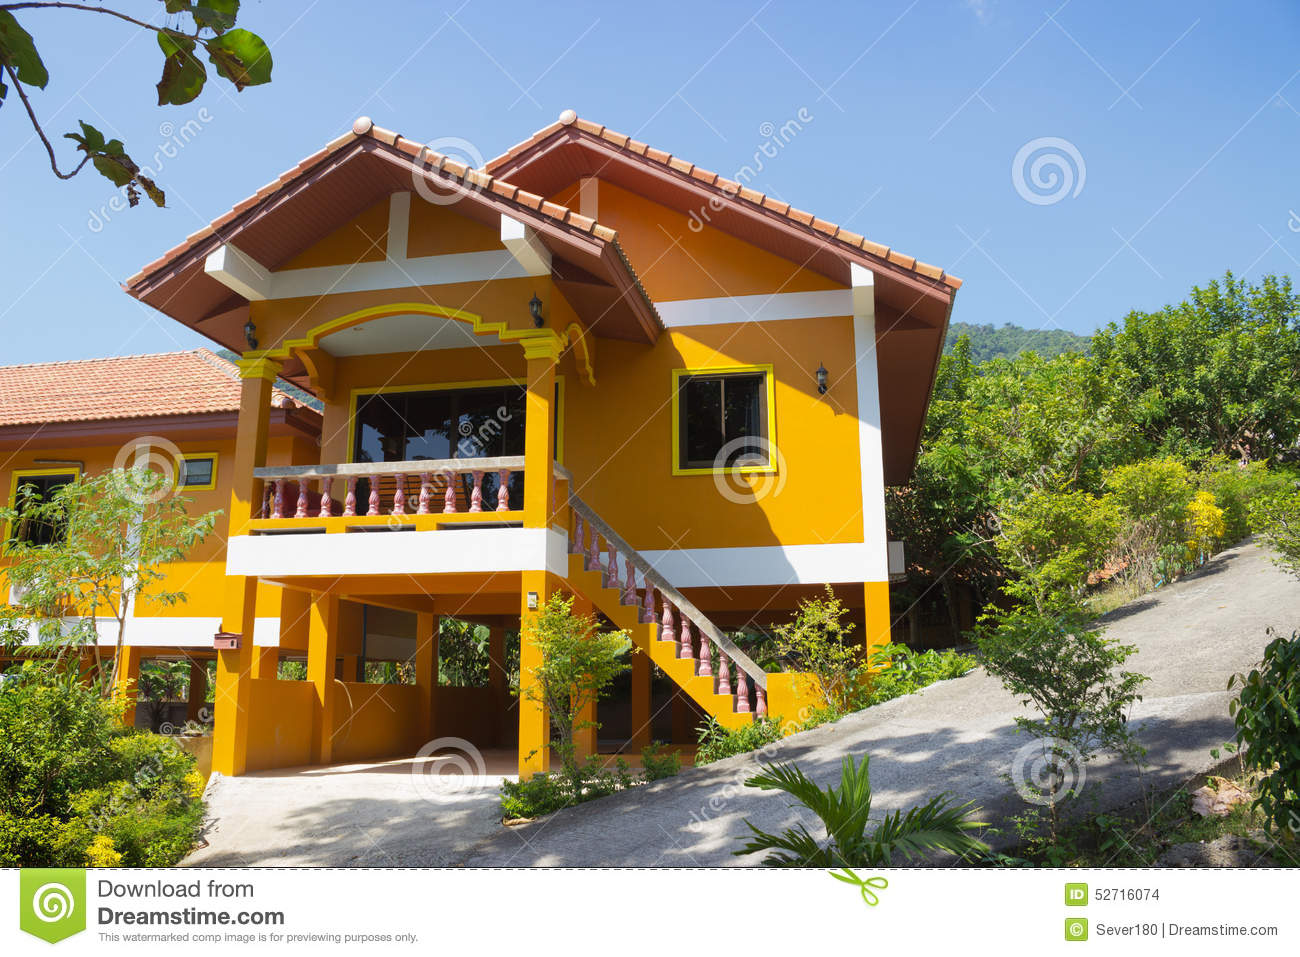 Modern house thailand for Thailand houses pictures